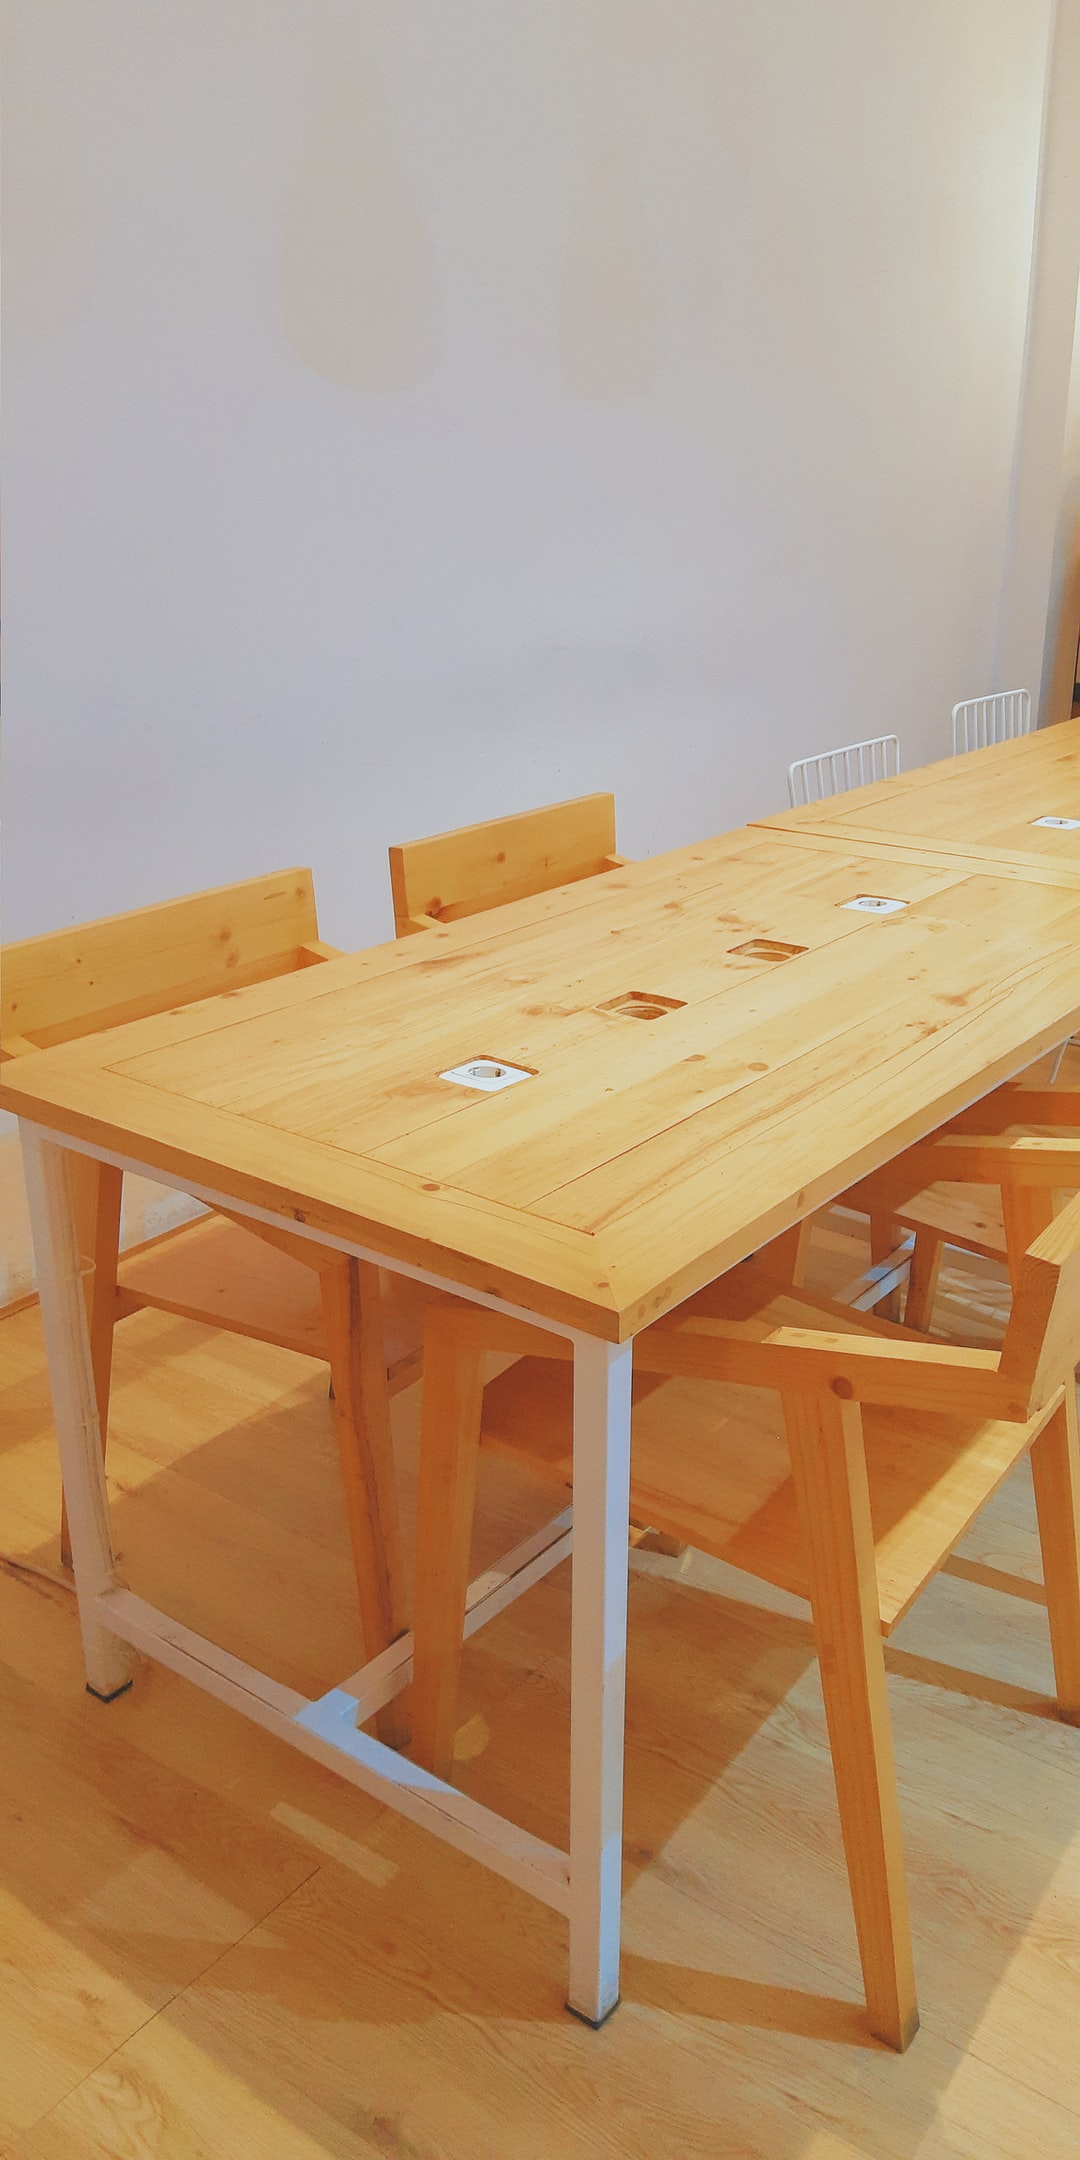 Teds WoodWorking Review: Everything You Need To Know Before Purchasing